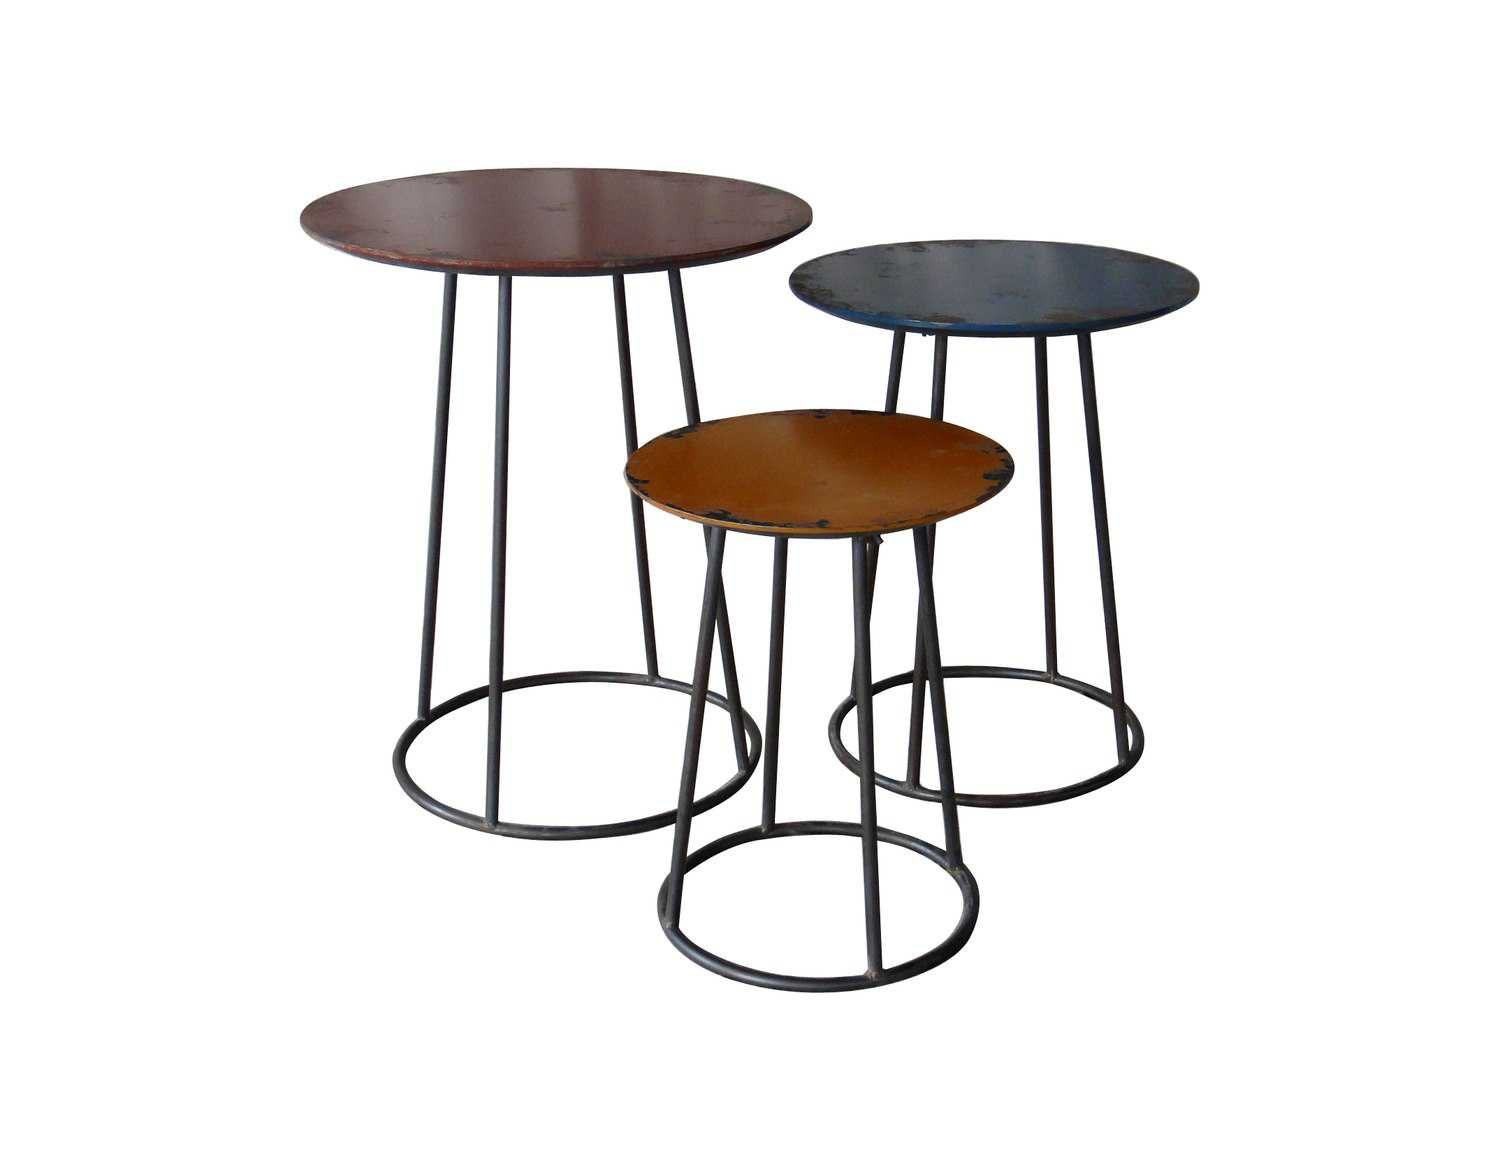 Moe 39 s home collection metal 20 round end table set of 3 for Accent furnitureable